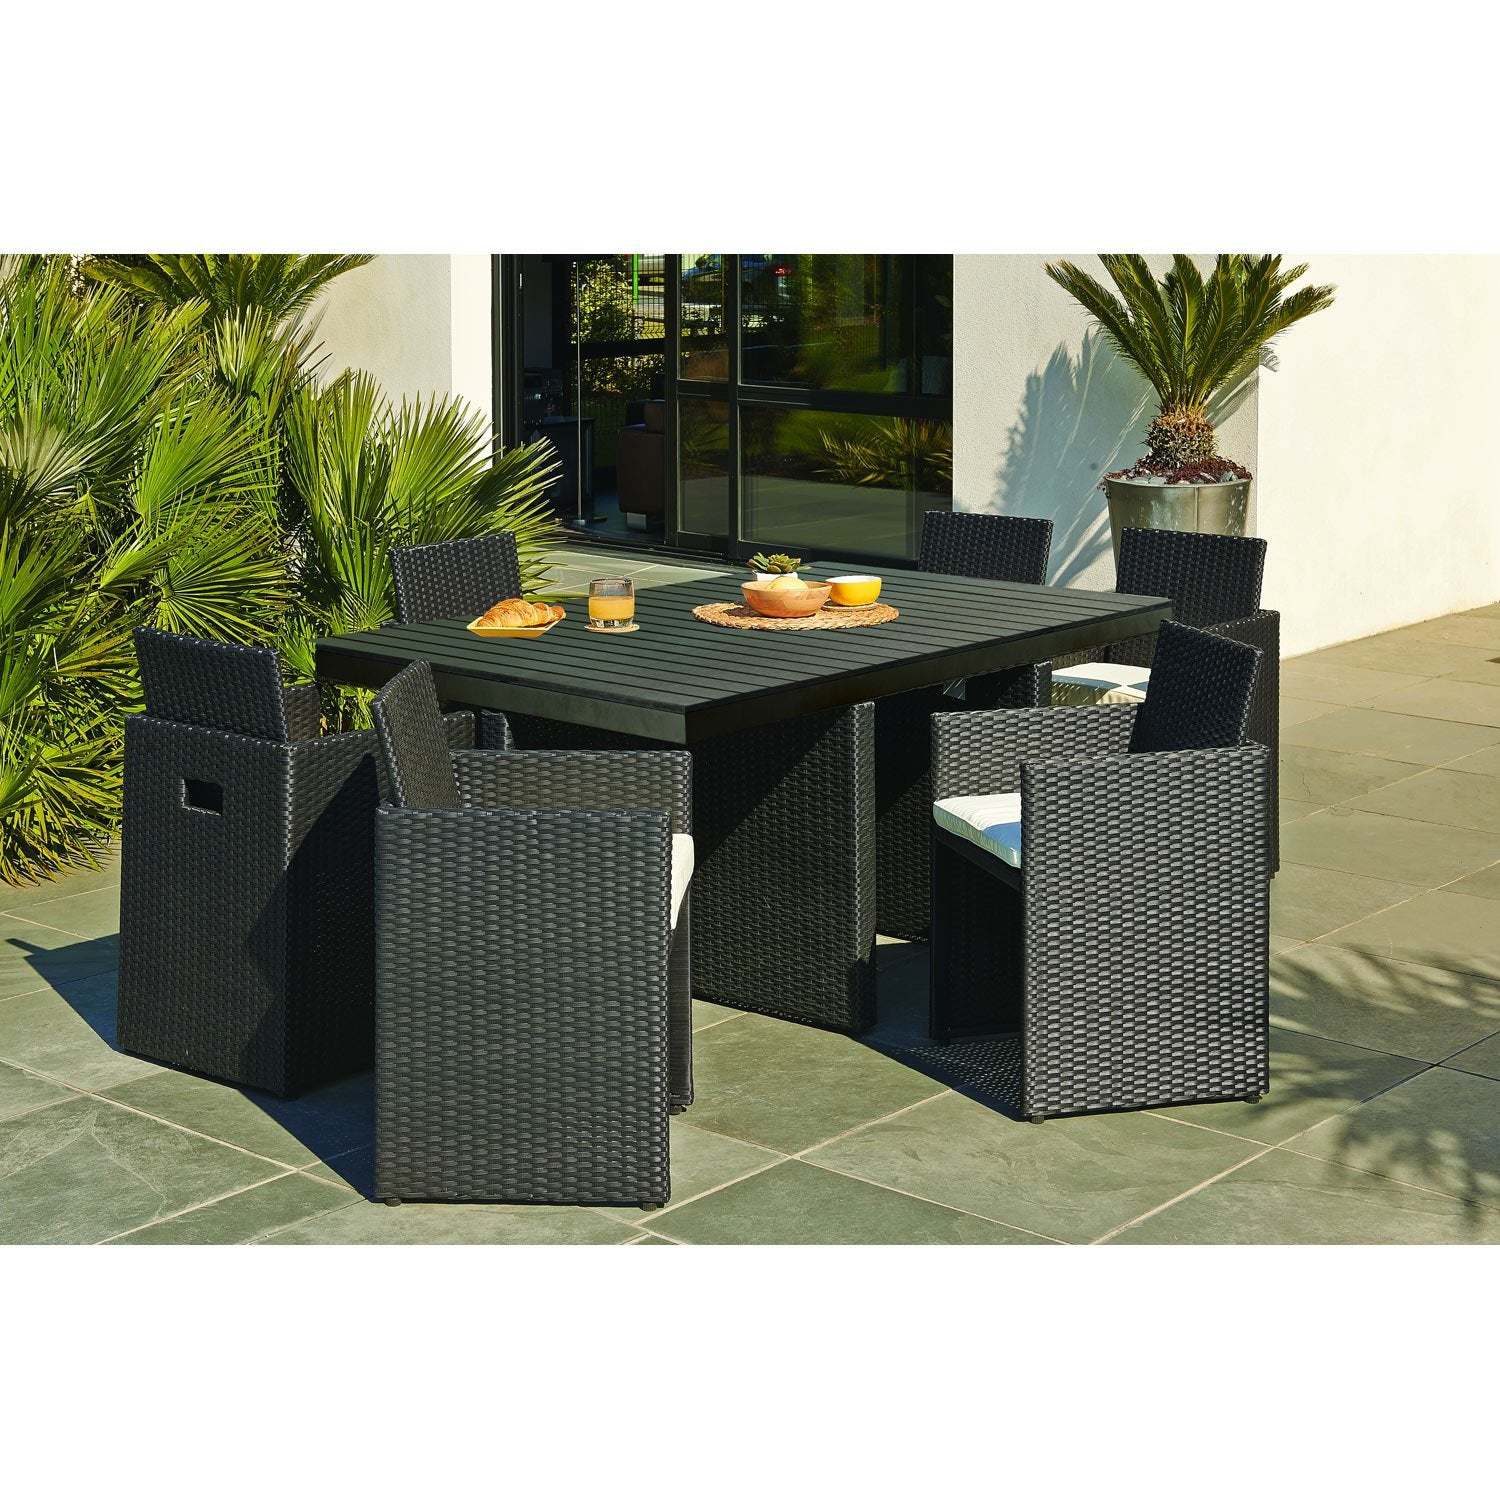 Salon de jardin encastrable r sine tress e noir 1 table for Salon de jardin fer forge leroy merlin